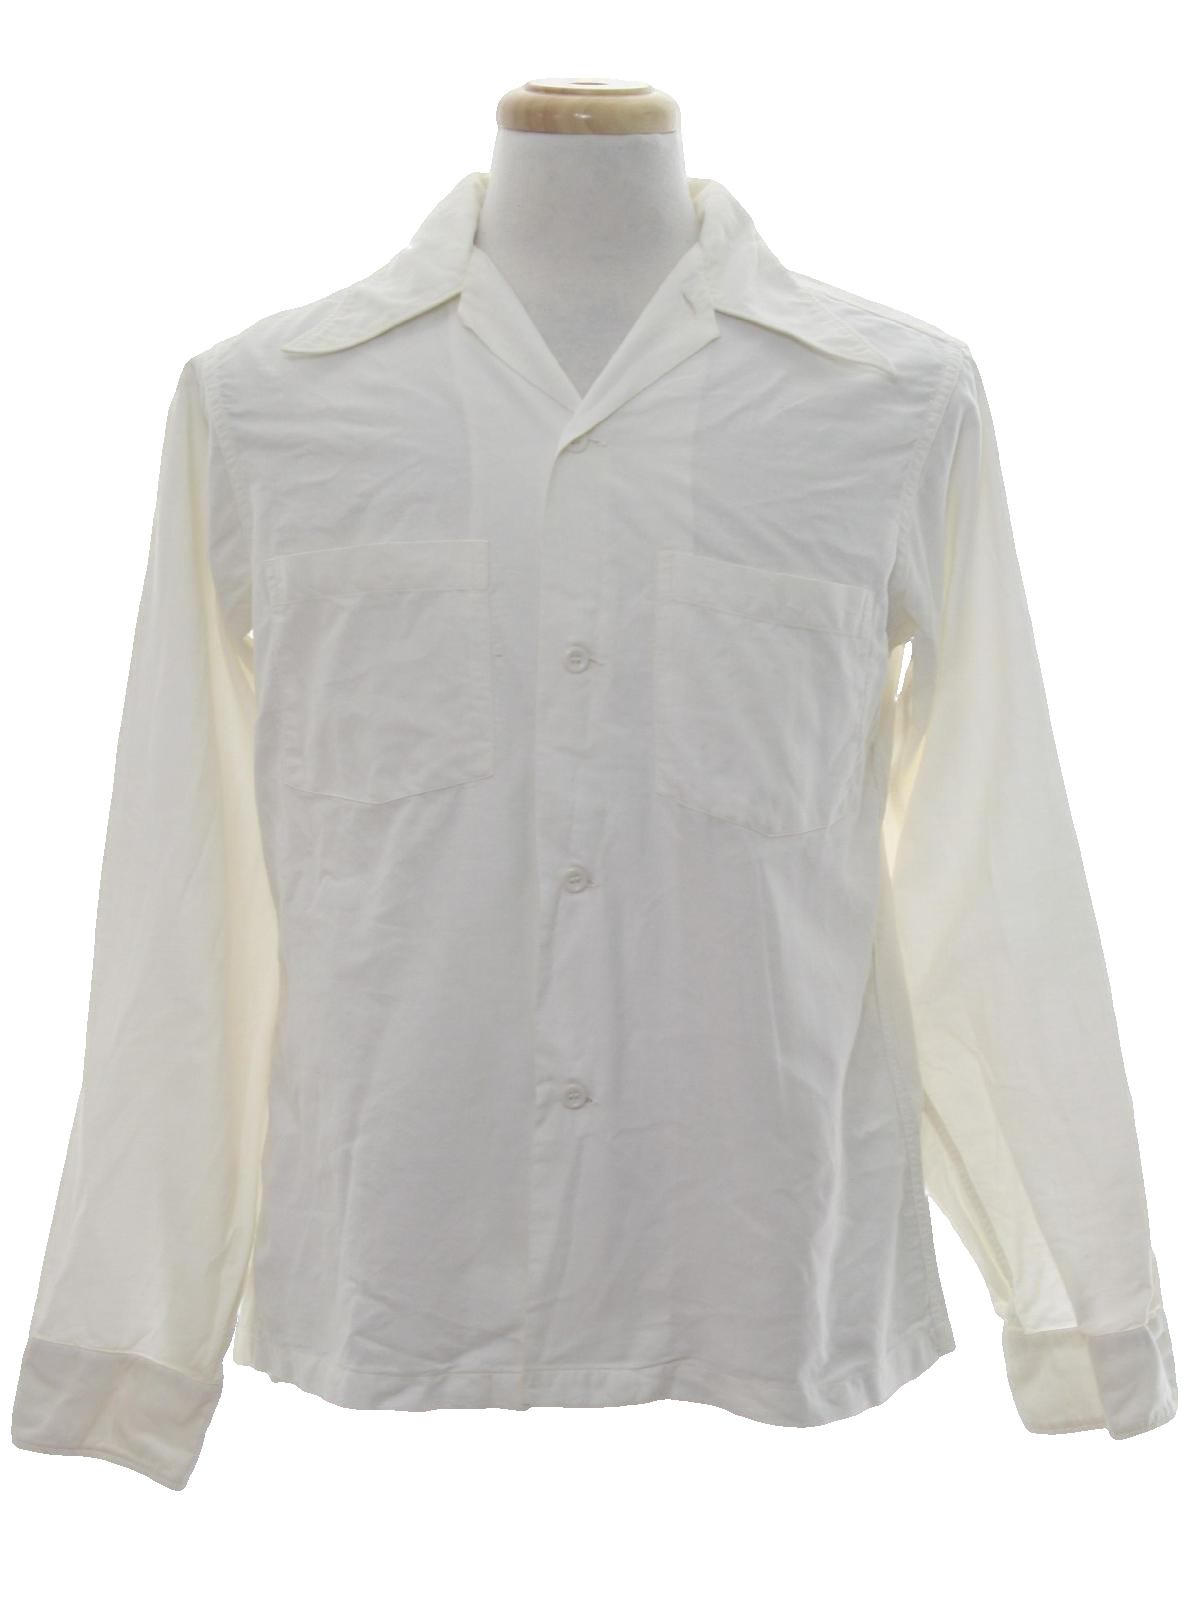 1970 39 s retro shirt 70s arrow mens white background for Solid color button up shirts